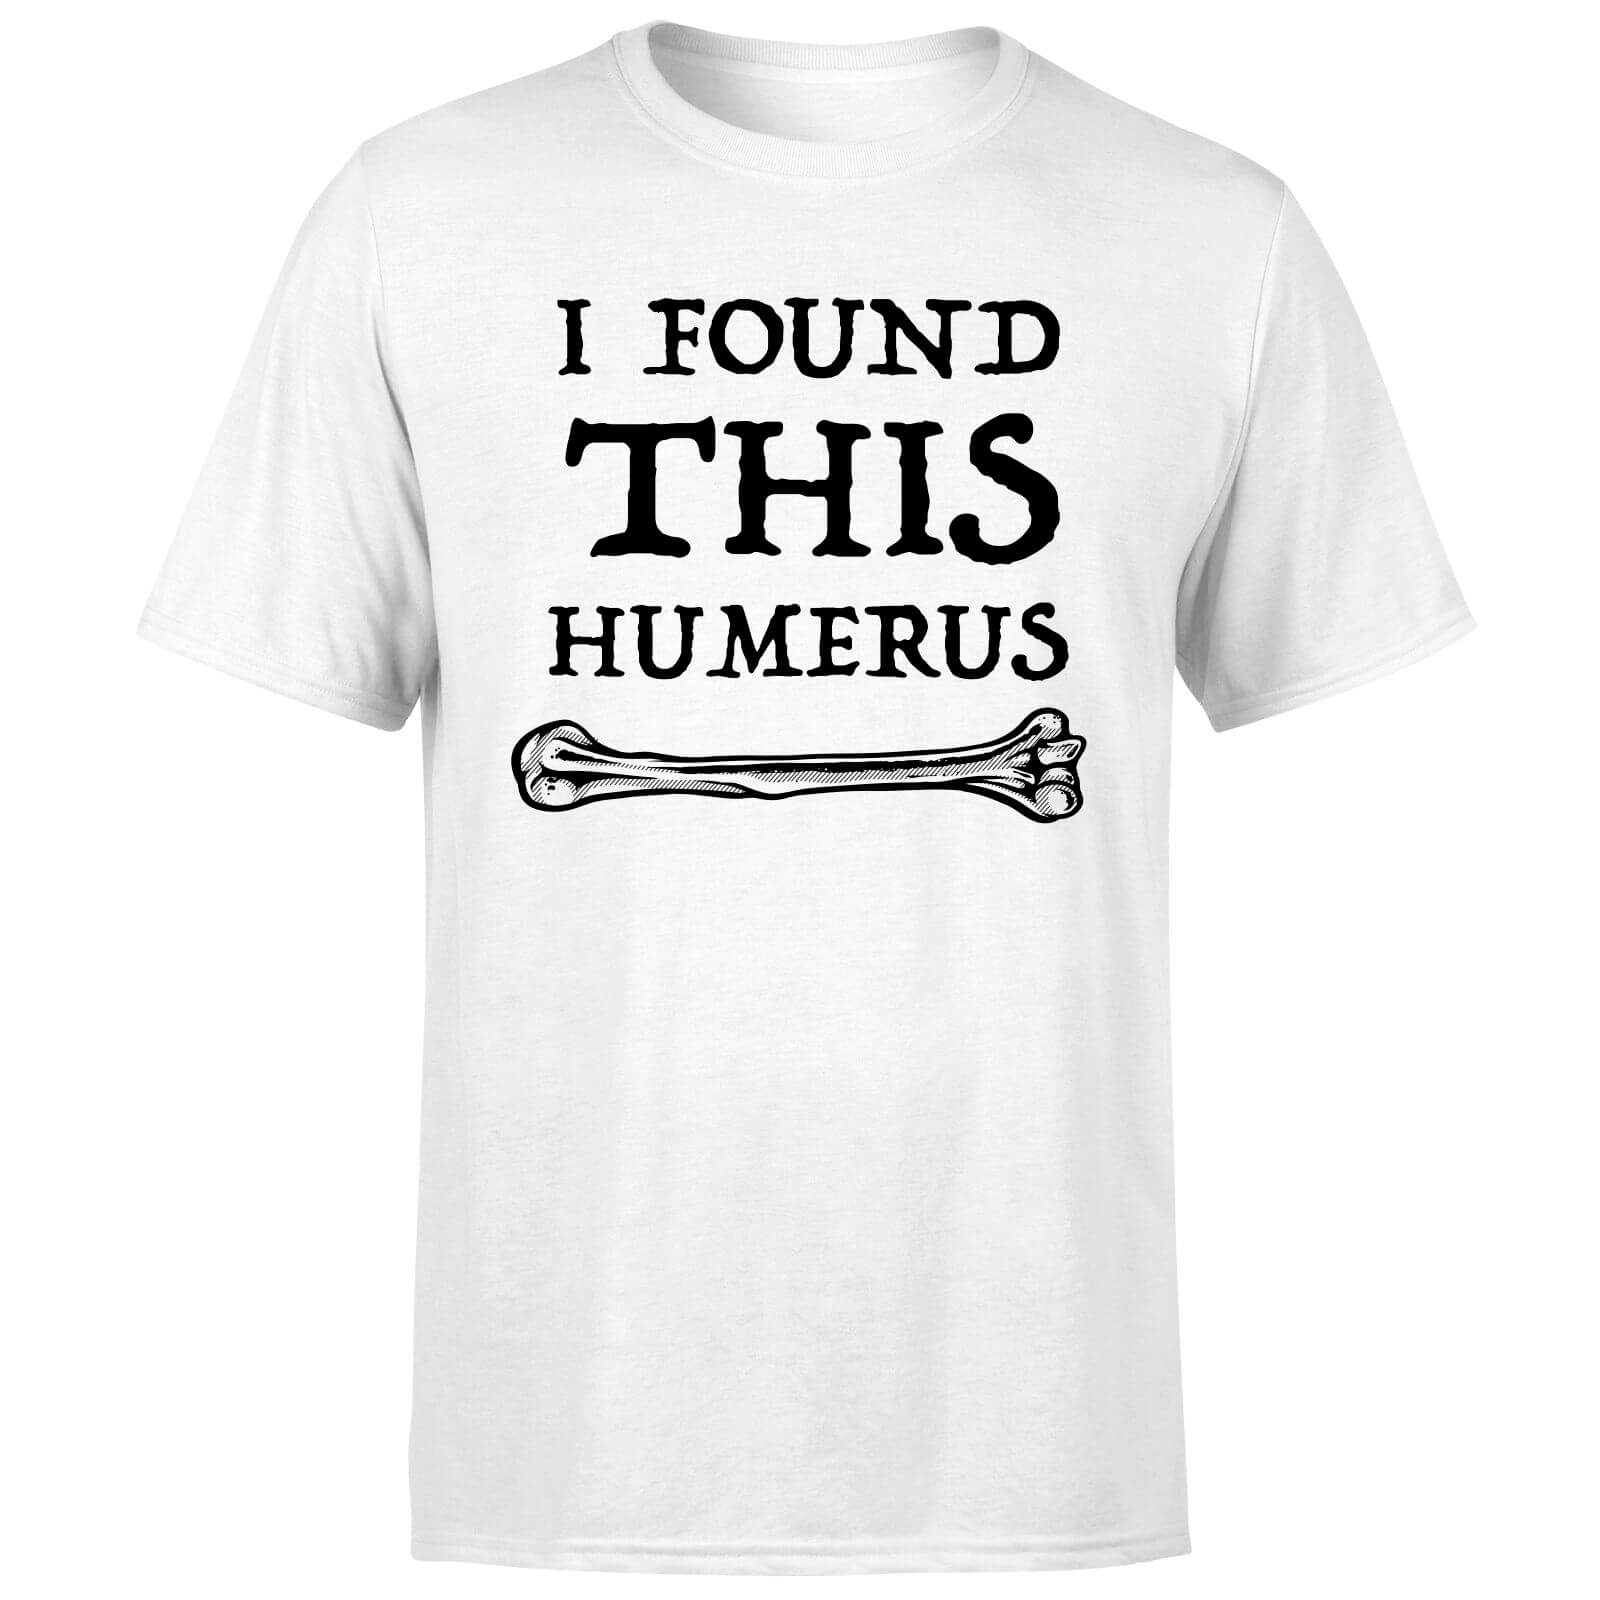 I Found this Humurus T-Shirt - White